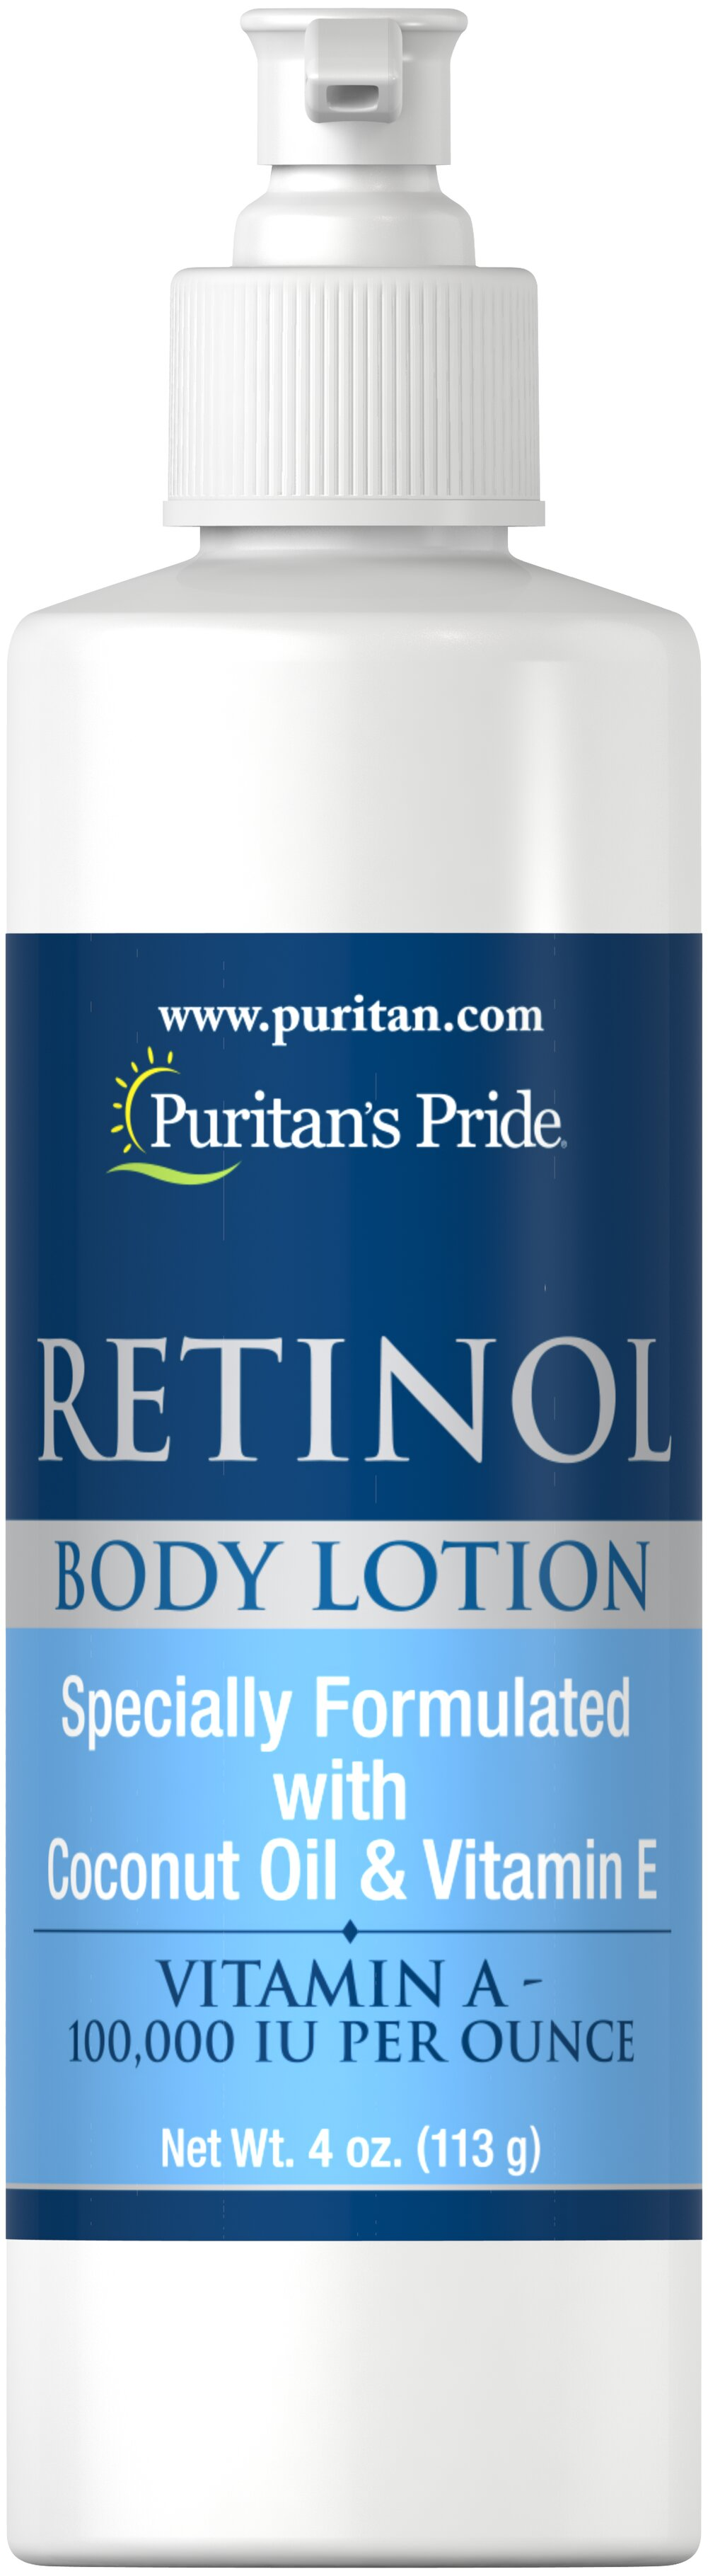 Retinol Body Lotion (Vitamin A 100,000 IU Per Ounce) <p>Vitamin A 100,000 IU per Ounce </p><p>Vitamin A is probably the most important skin vitamin for the appearance of the skin. Vitamin A is also one of the few vitamins that can be absorbed through the skin to provide direct benefits. Let your skin take advantage of the benefits of Vitamin A Lotion.</p> 4 oz Lotion 100000 IU $13.39